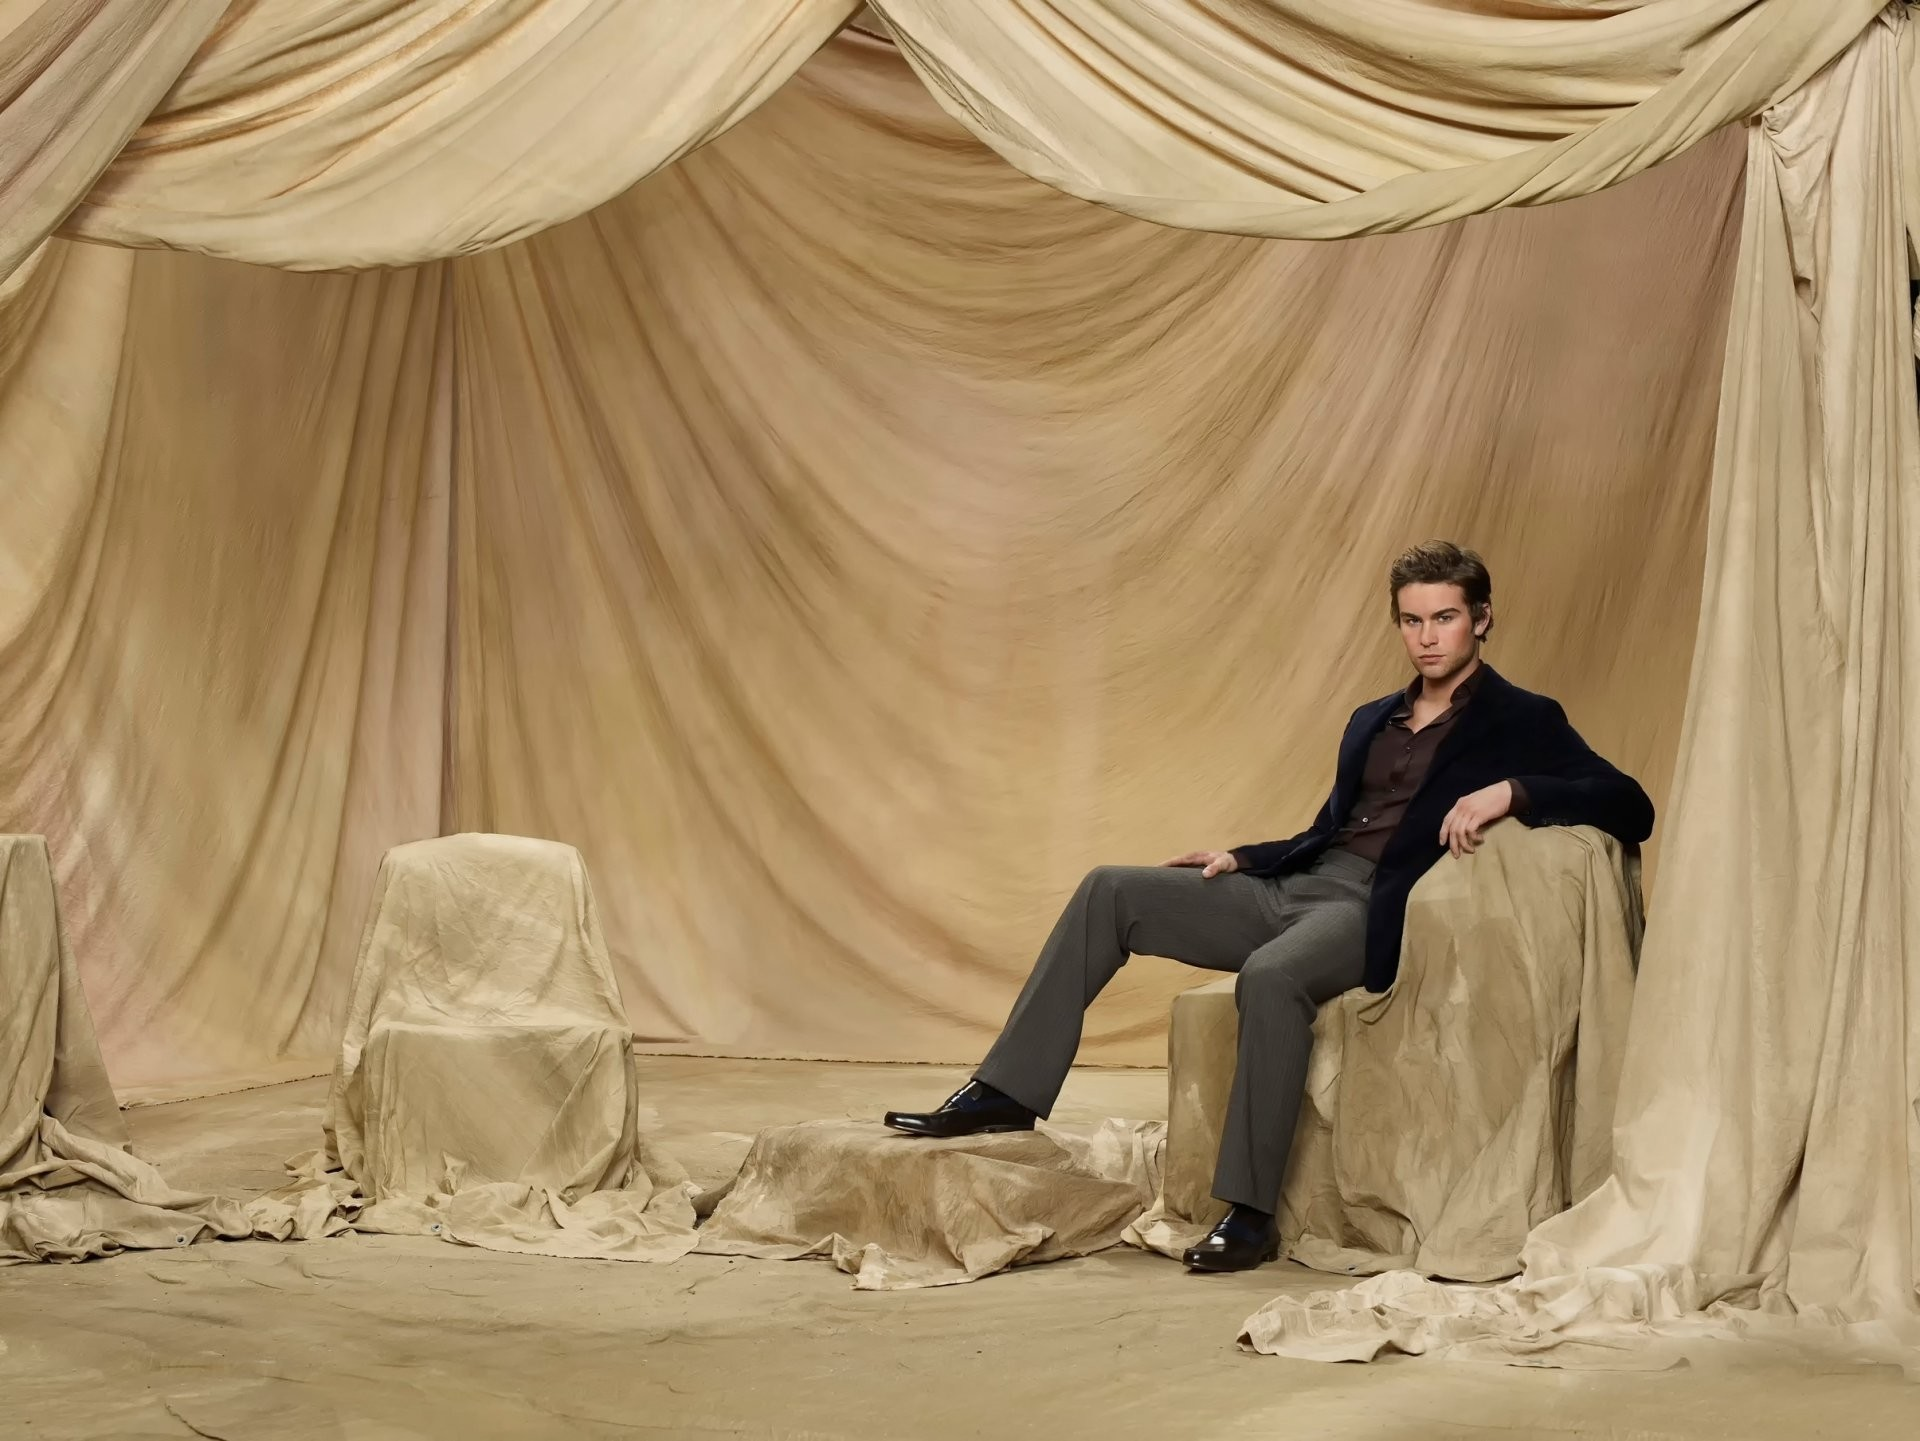 Res: 1920x1441, chace crawford photoshoot gossip girl promo